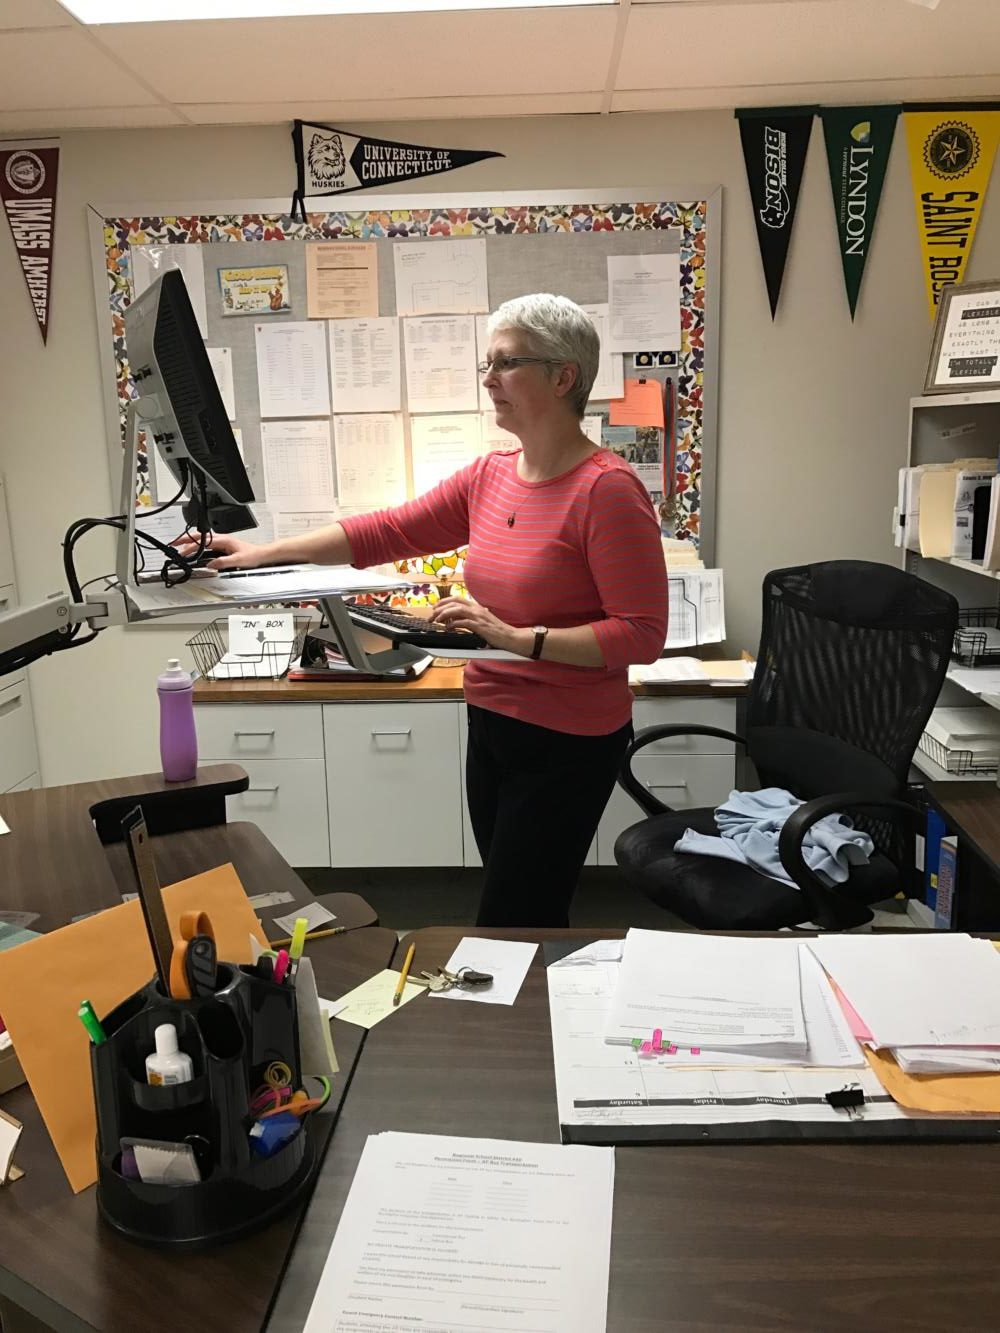 Guidance department secretary Cindy Berardinelli recently started using a standing desk, and touts benefits of her new perspective on work.